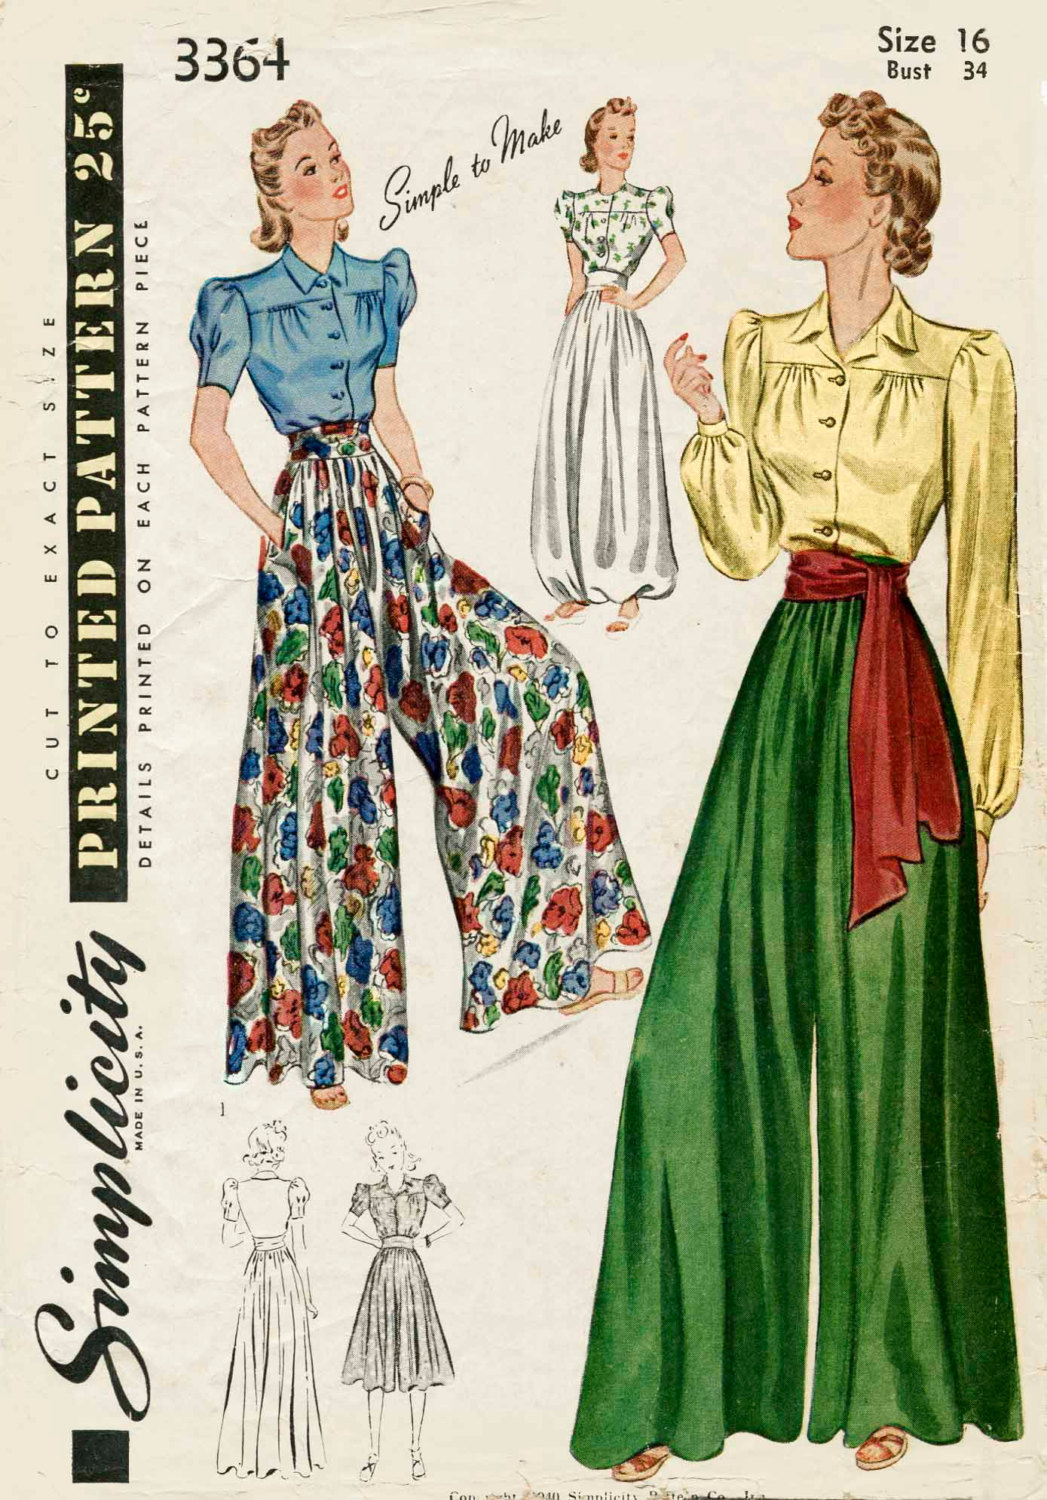 1930s 1940s Vintage Nähen Muster Palazzo Hose weites Bein Hose